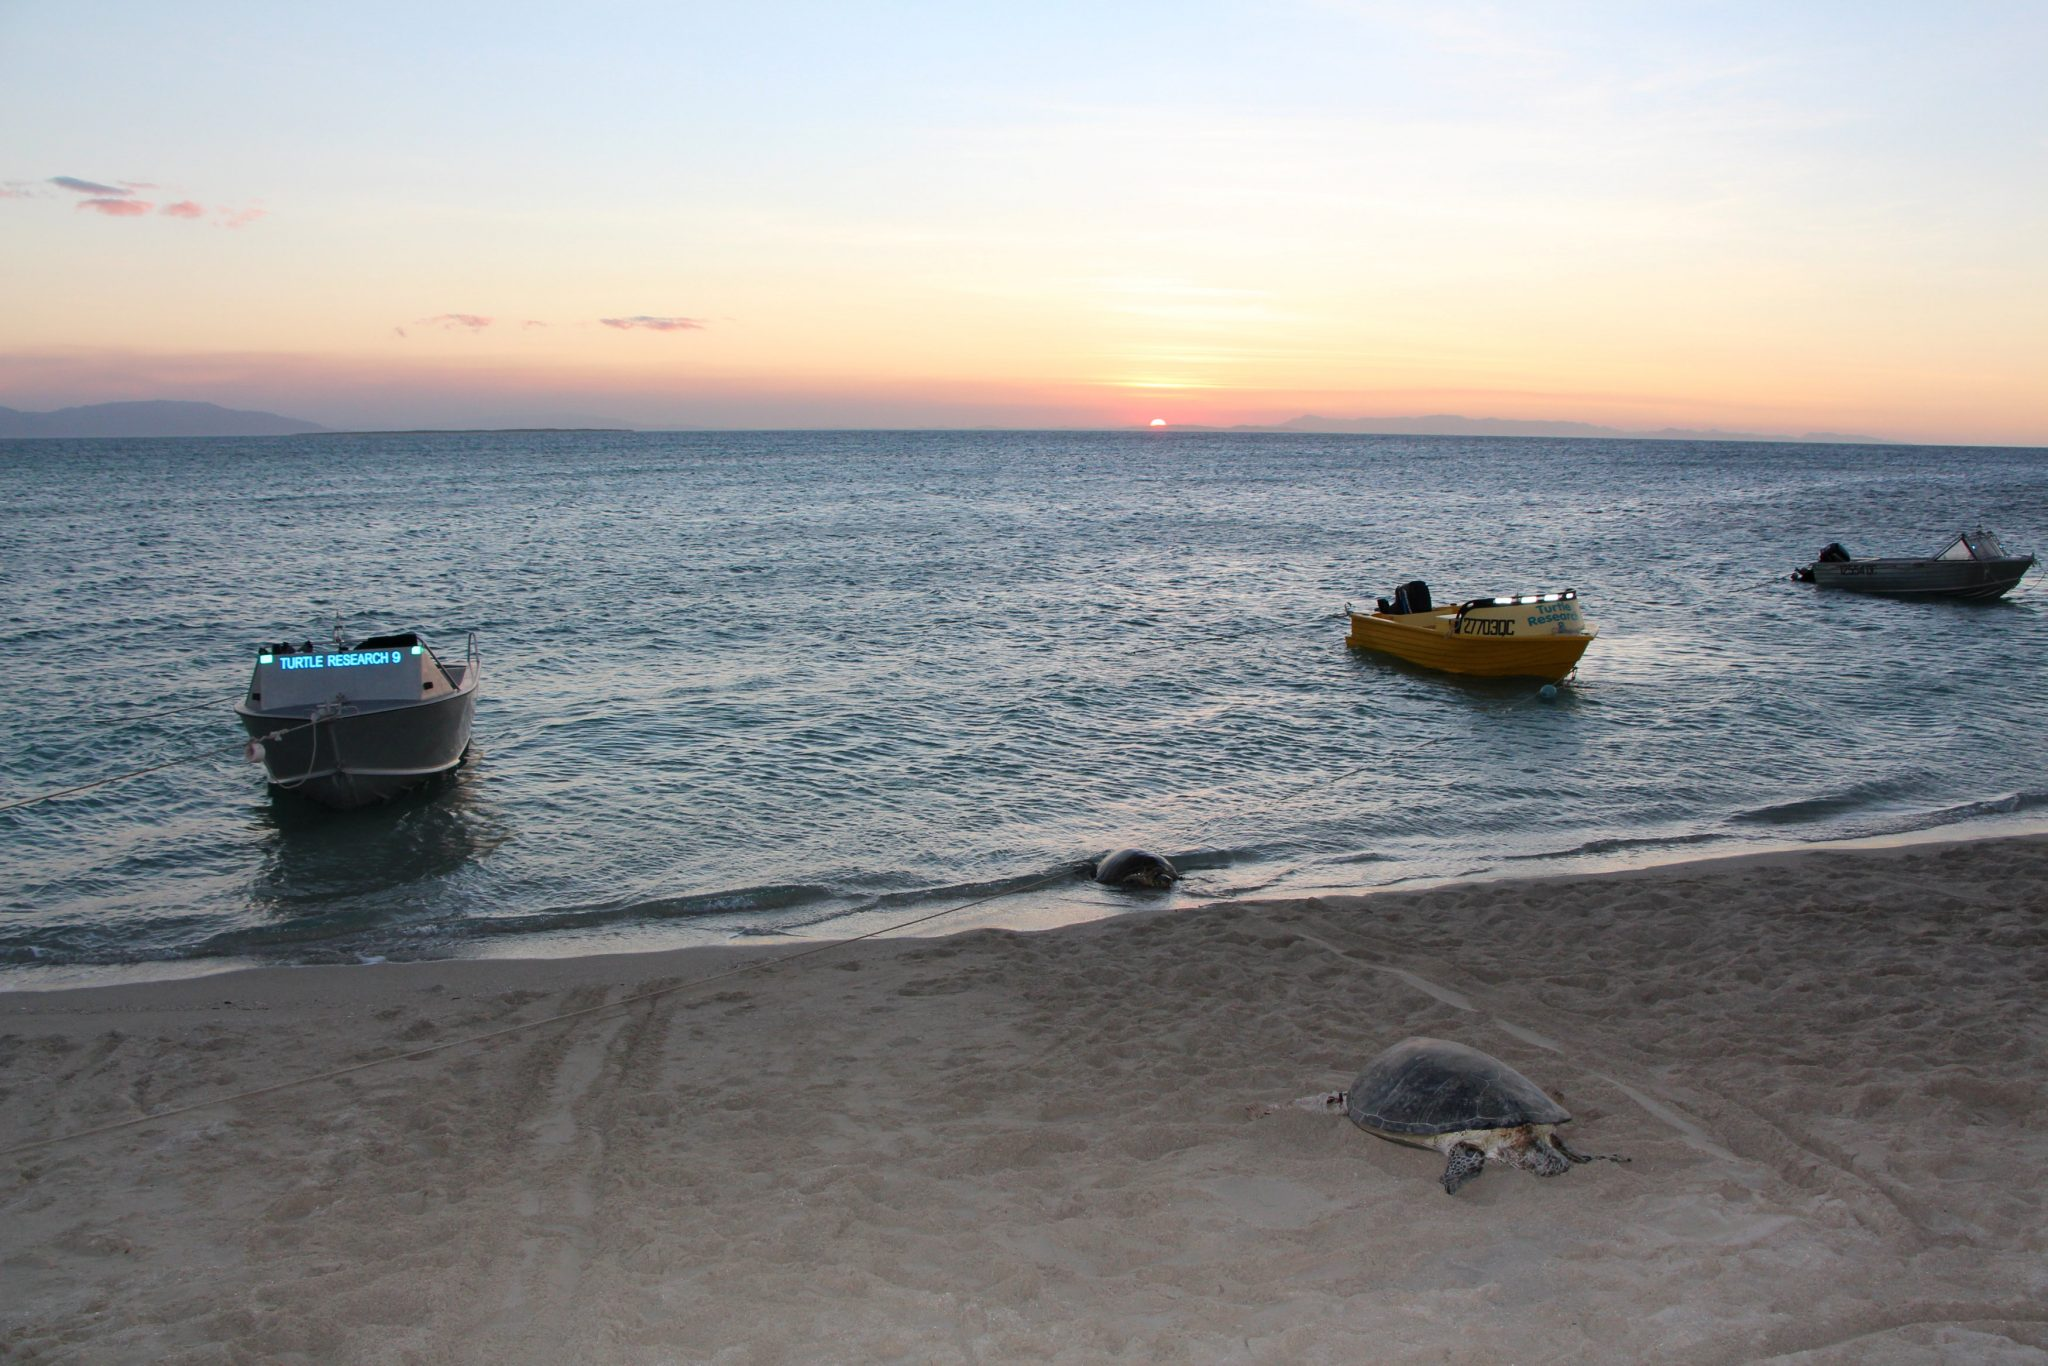 Turtles are seen on the beach at sunset on Ingram Island, Queensland, Australia in this handout photo dated August 28, 2014. WWF Australia/Handout via REUTERS ATTENTION EDITORS - THIS IMAGE HAS BEEN SUPPLIED BY A THIRD PARTY. MANDATORY CREDIT. NO RESALES. NO ARCHIVES.